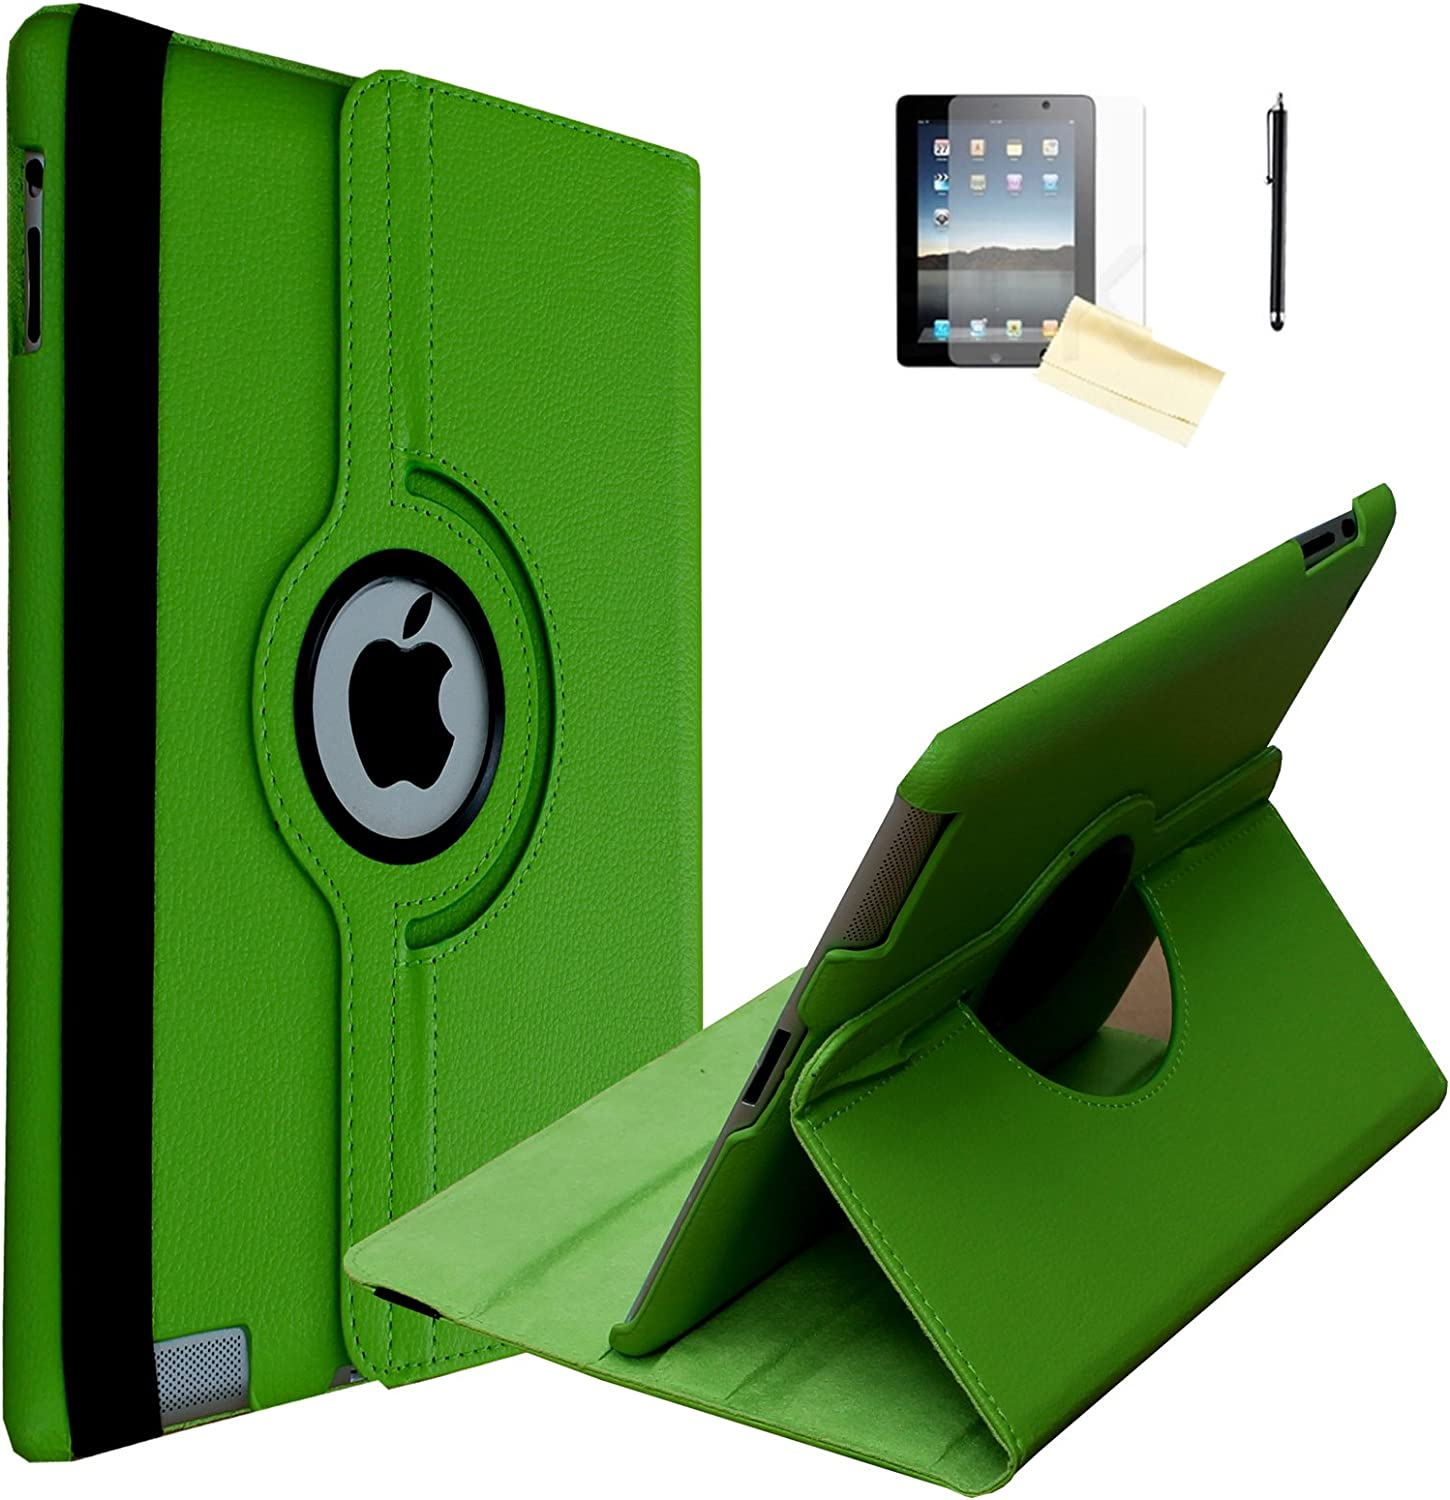 JYtrend iPad Air 2 Case (2014 Release), (R) Rotating Stand Smart Case Cover Magnetic Auto Wake Up/Sleep for iPad Air 2 A1566 A1567 MGKL2LL/A MGTX2LL/A MNV62LL/A MNV72LL/A MNV22LL/A (Light Green)